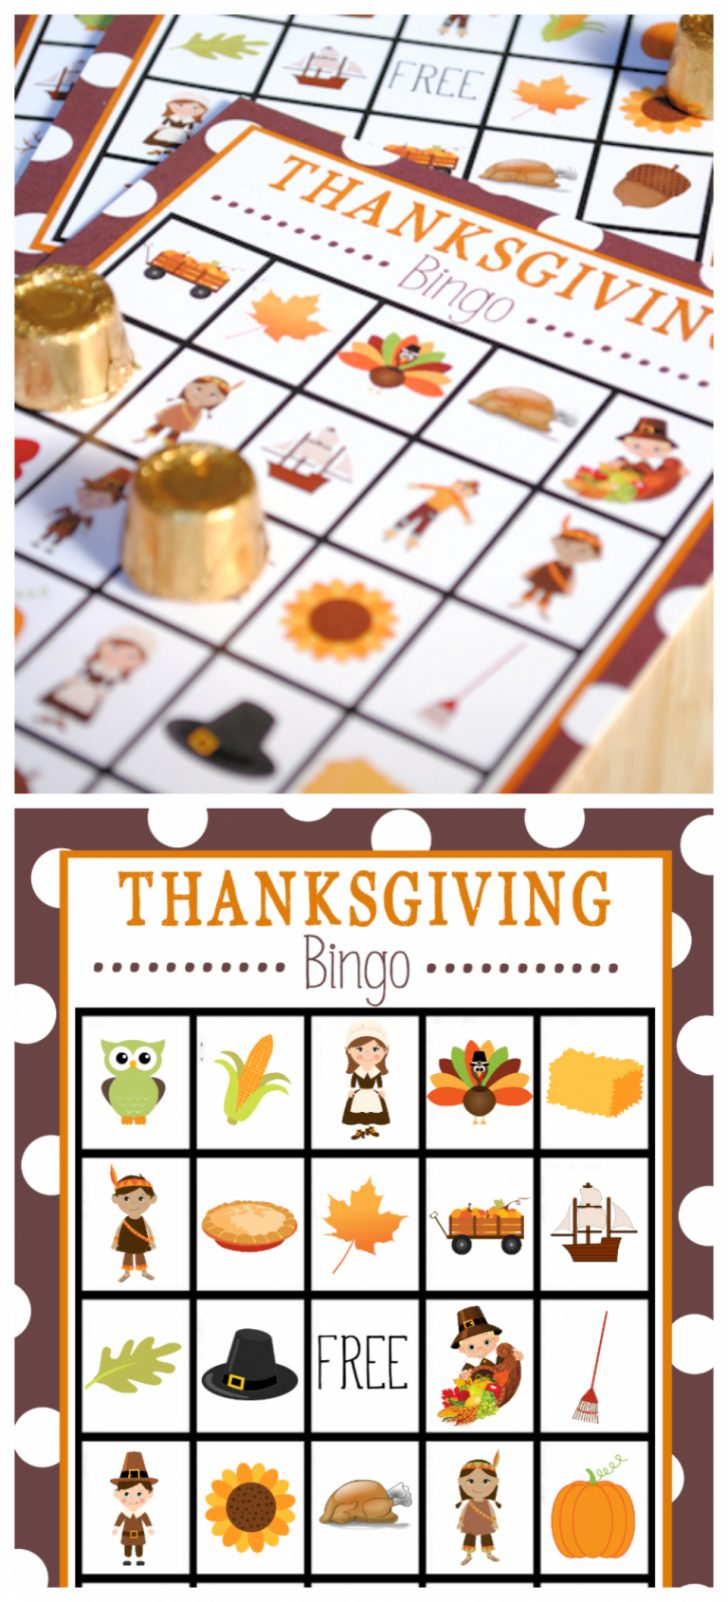 Printable Thanksgiving Picture Bingo Cards